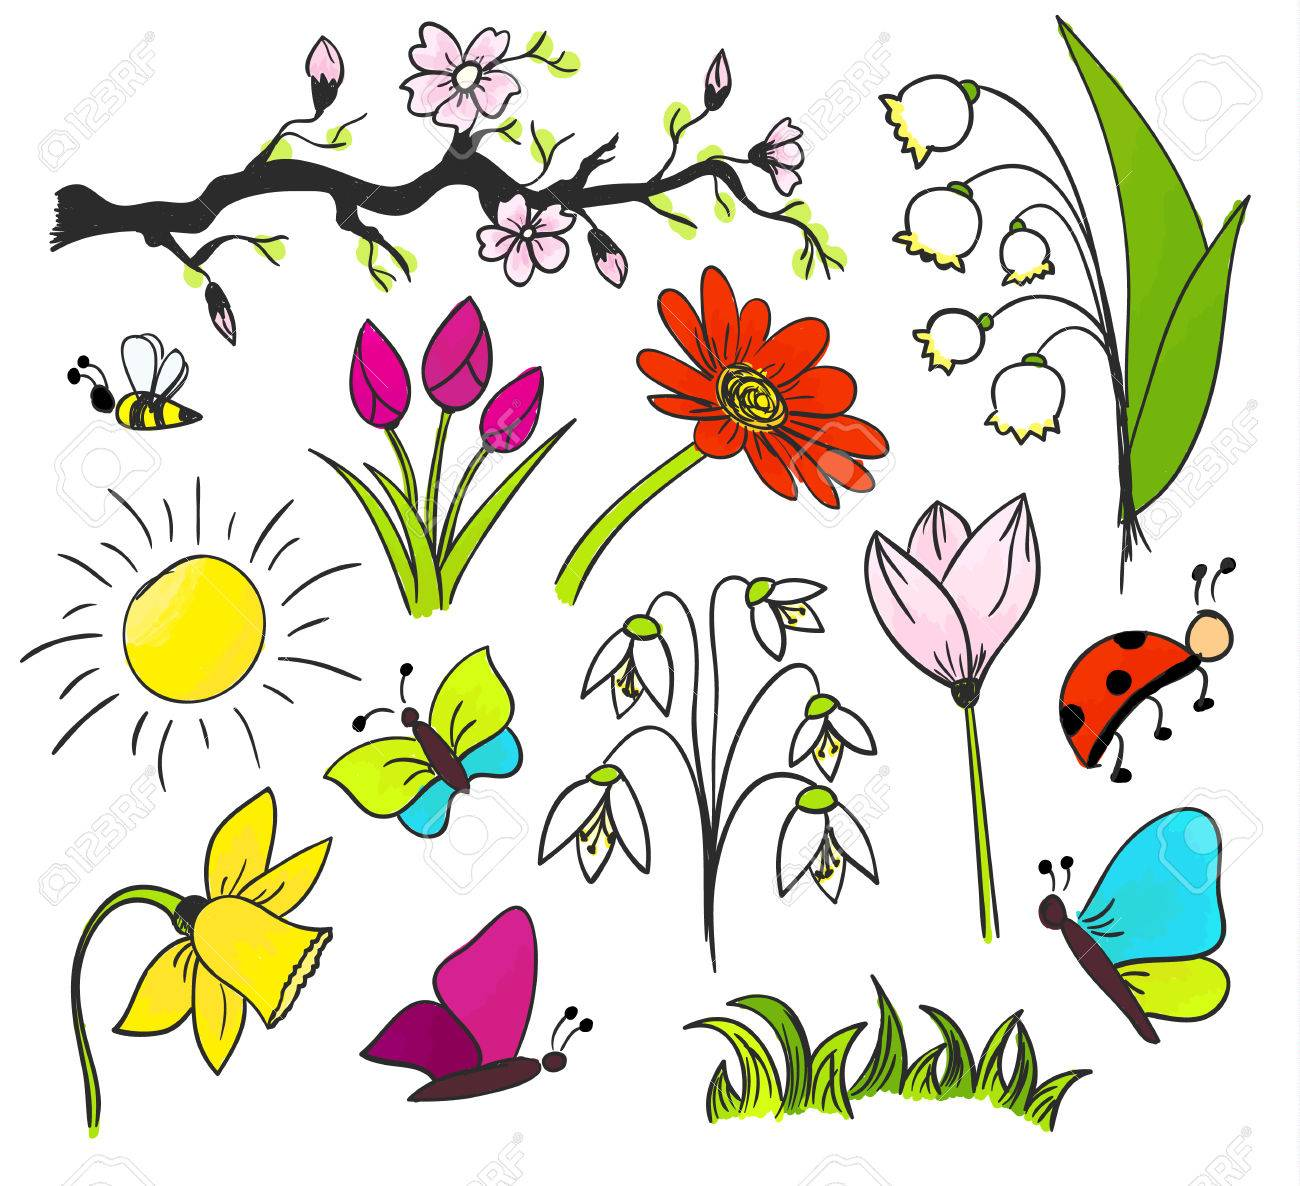 Spring Flowers Vector Drawing Isolated Colorful Royalty Free